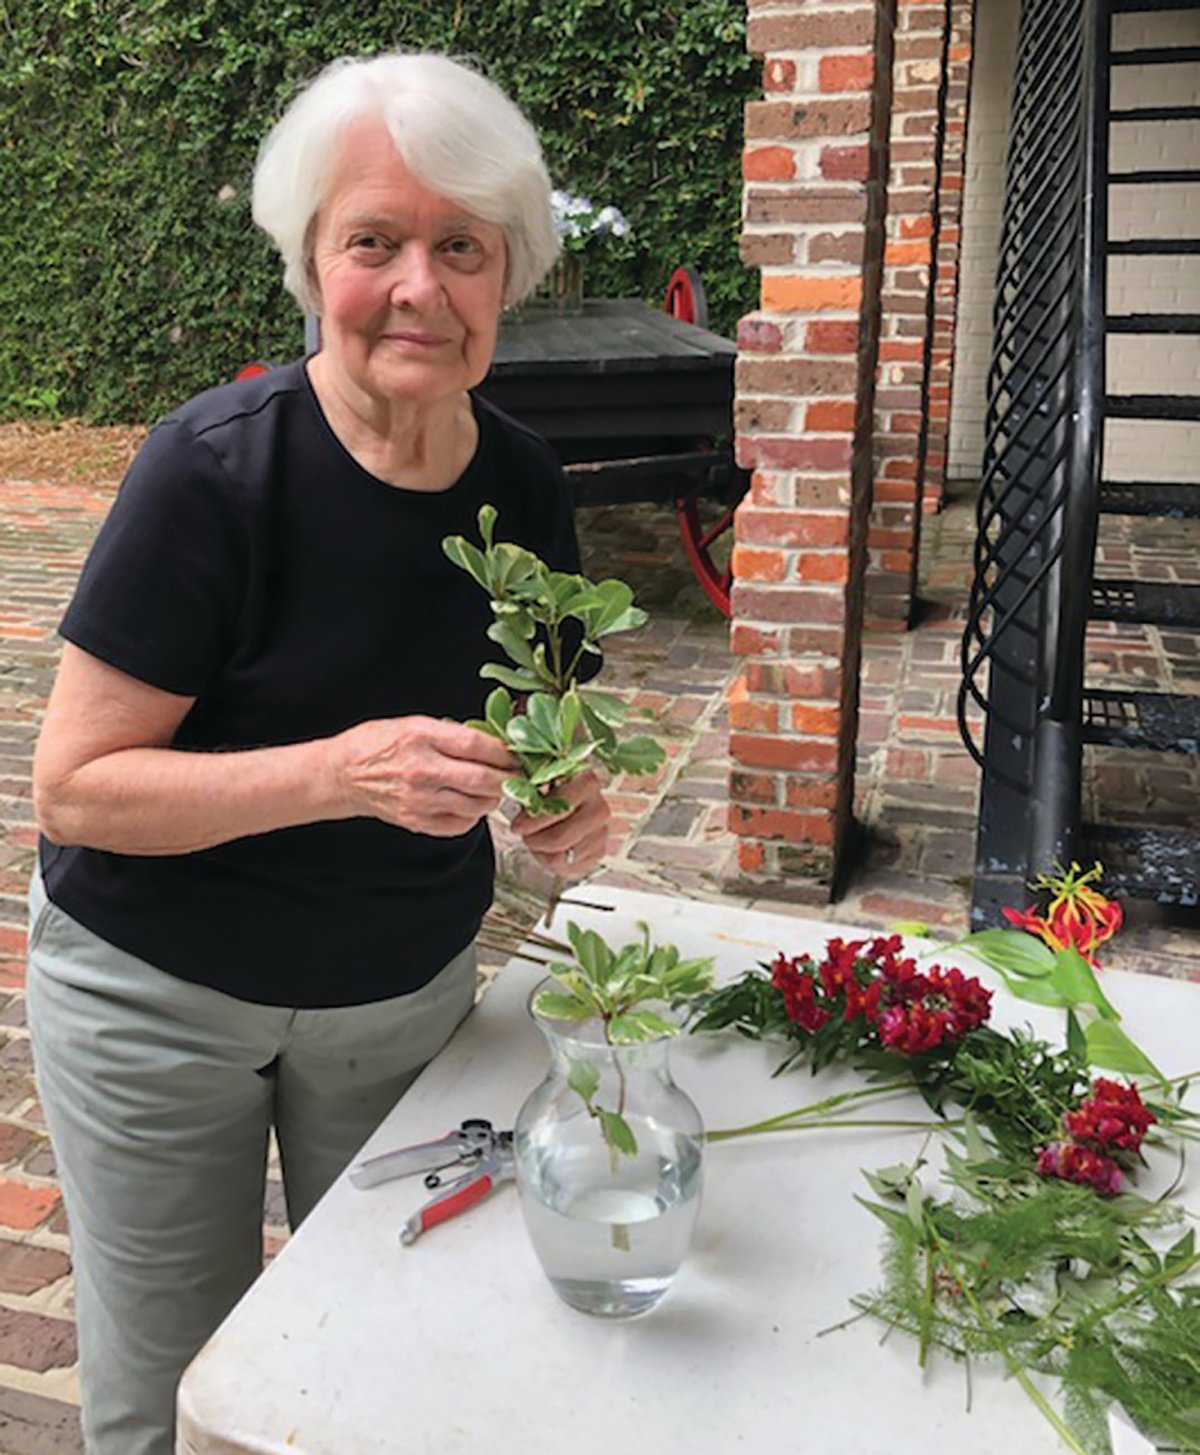 Azalea Garden Club member Mary Lou Schoeck prepares one of the flower arrangements that club members designed and delivered to Manning businesses and civic organizations as part of the club's annual community beautification project.